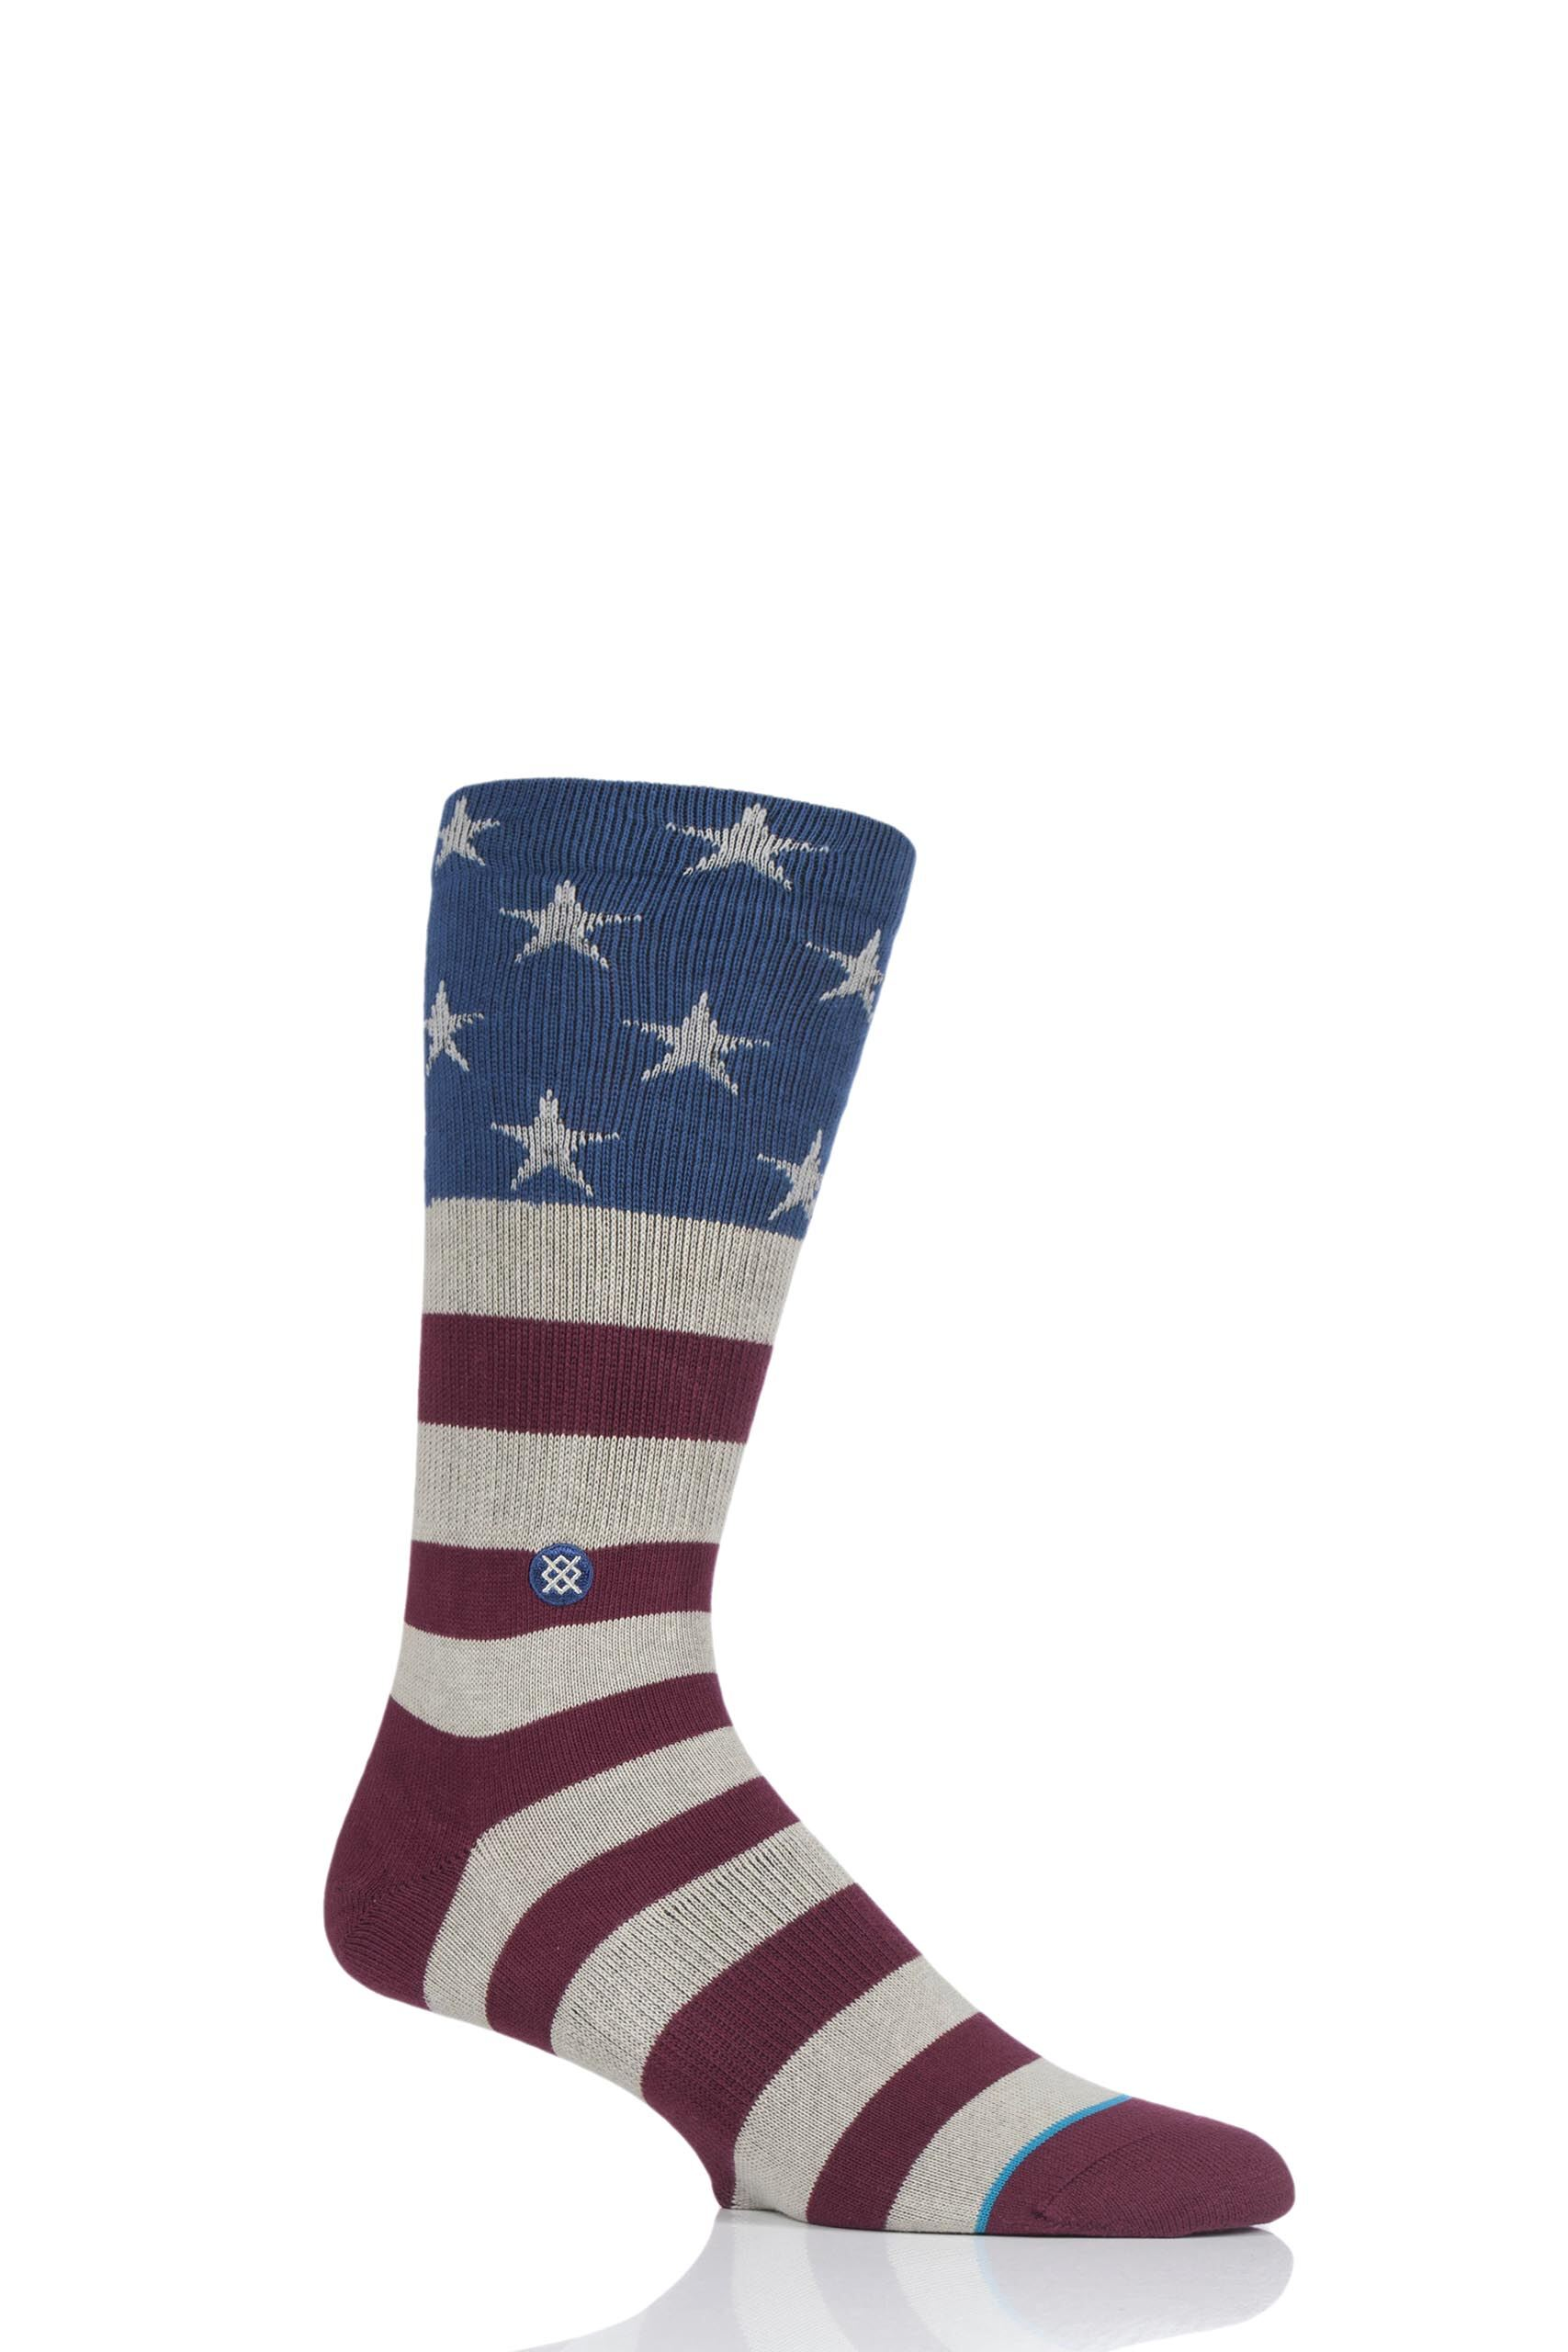 Image of 1 Pair Assorted The Fourth American Flag Cotton Socks Men's 8.5-11.5 Mens - Stance